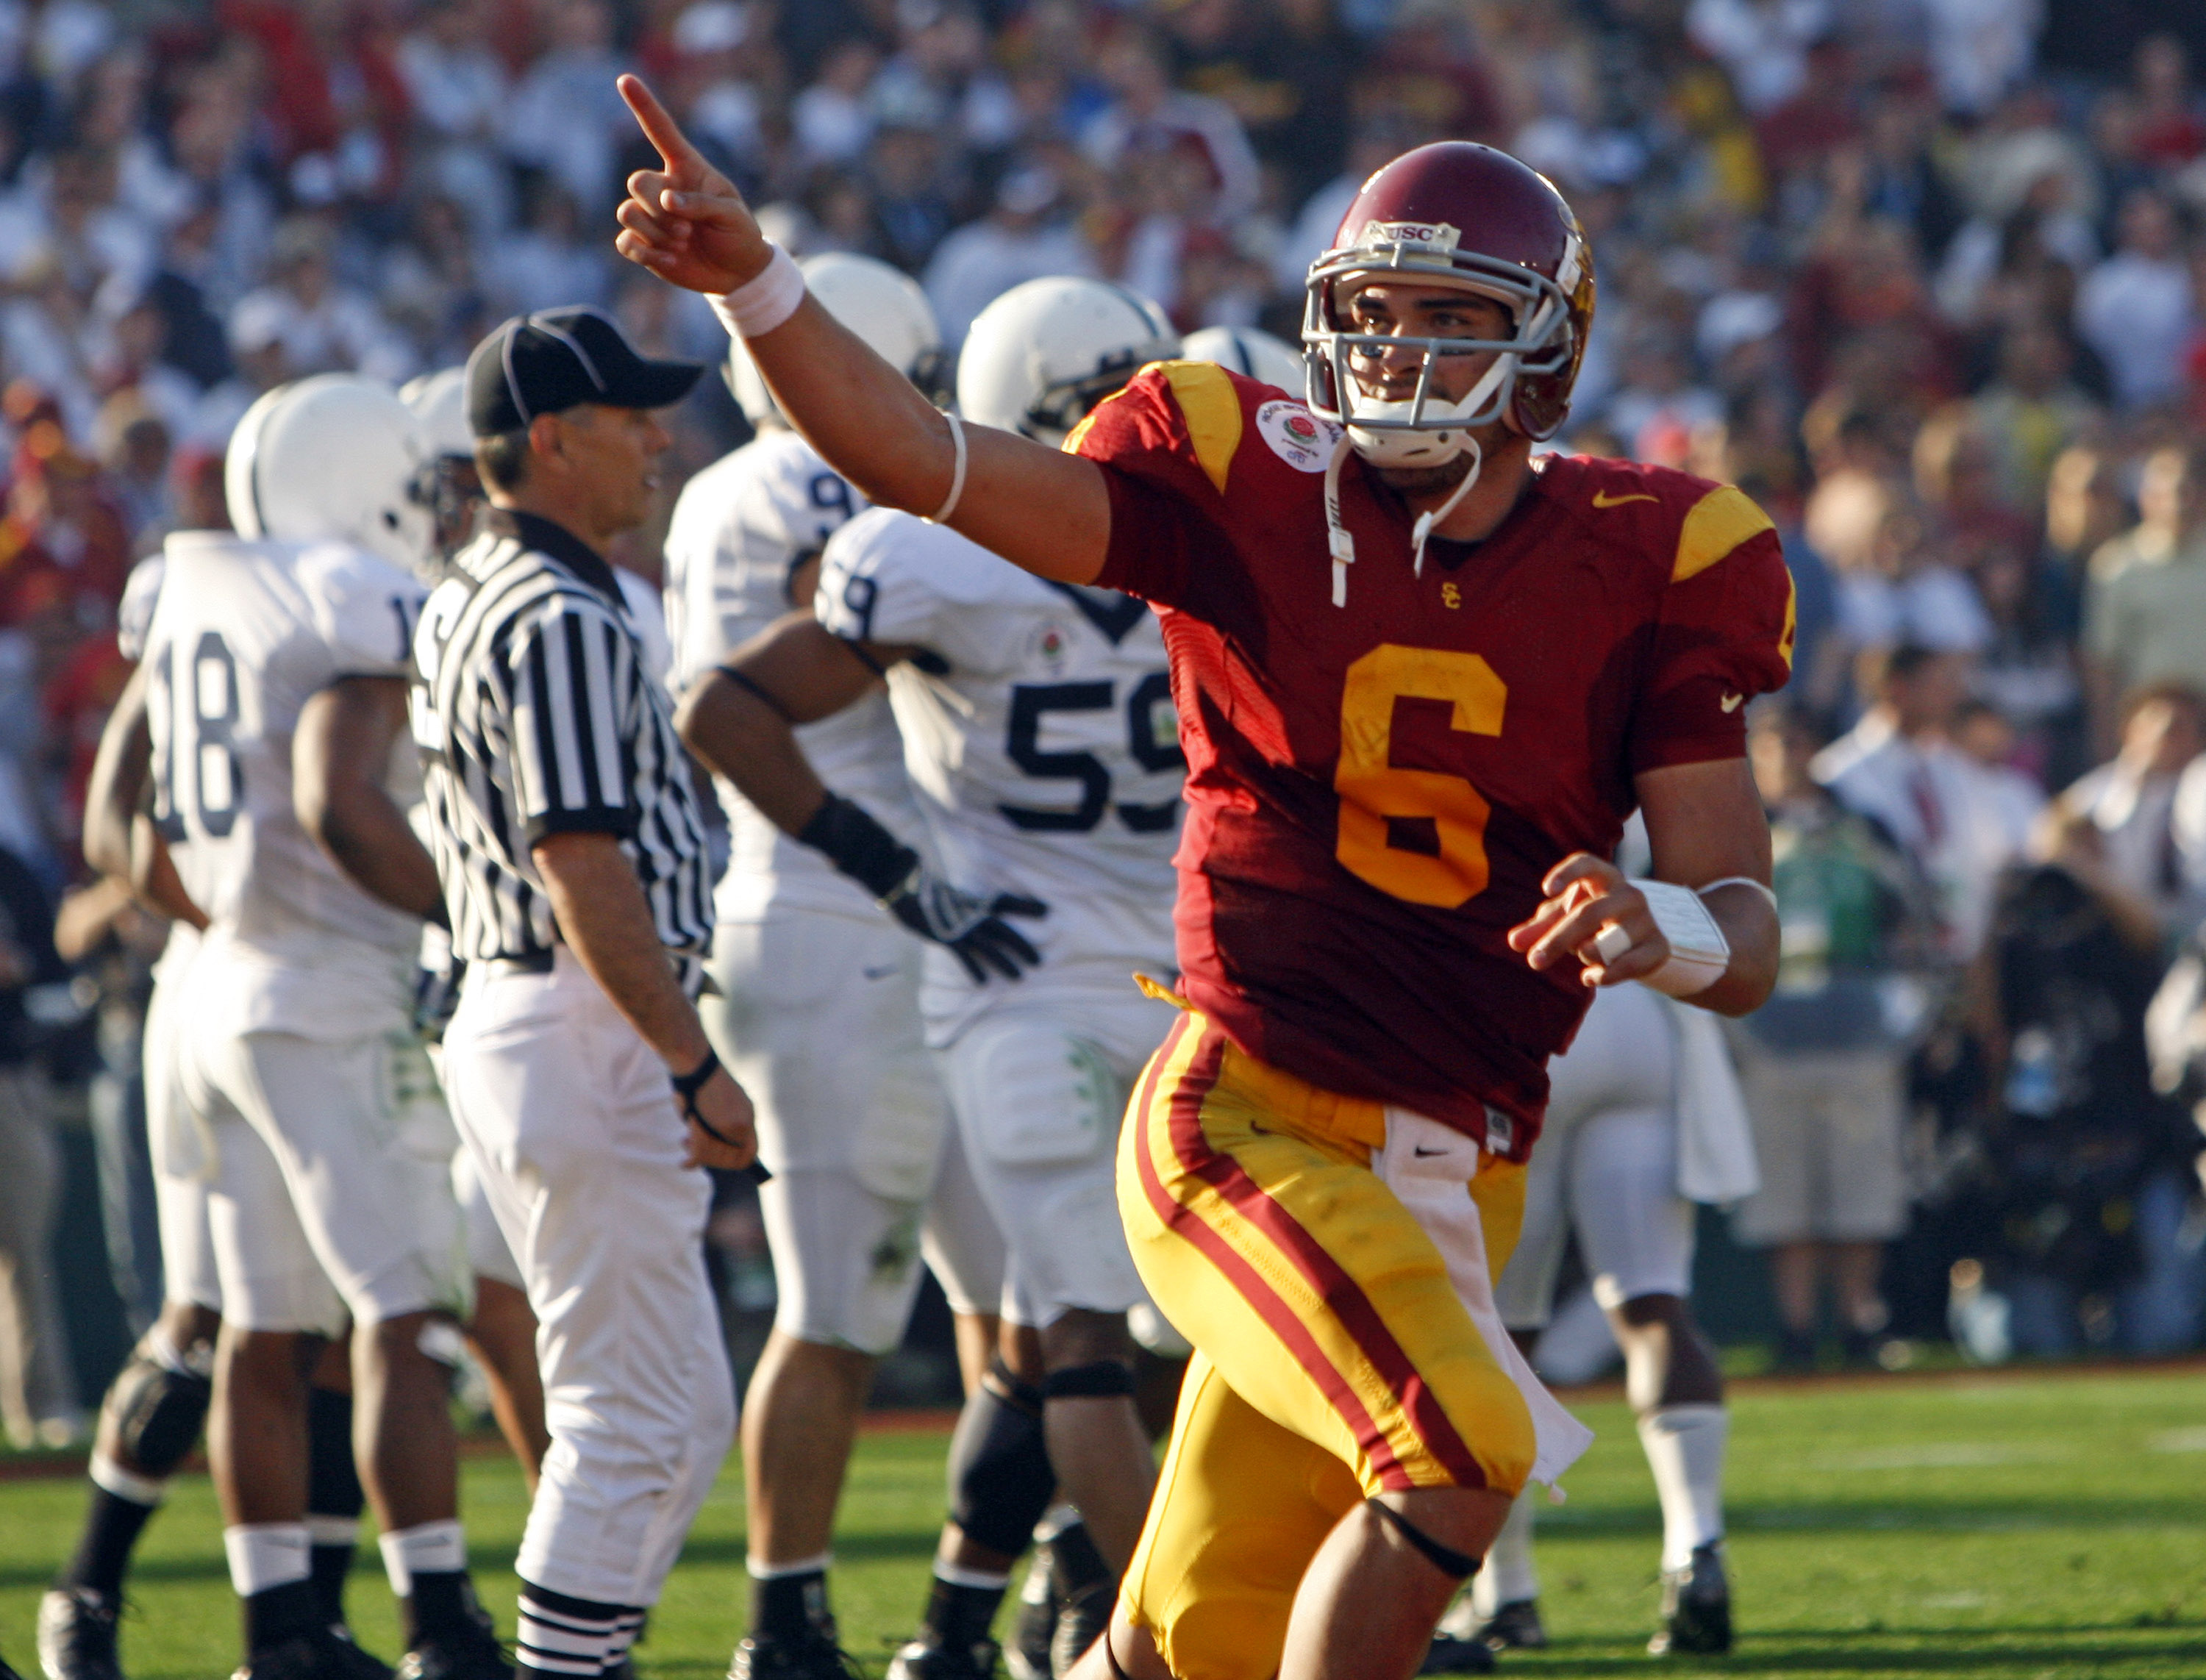 Pasadena, California–– USC Trojans quarterback Mark Sanchez signals to the crowd after his second quarter touchdown against the Penn State Nittany Lions in the 95th Rose Bowl Game in Pasadena, California January 1, 2009. (Photo by Luis Sinco/Los Angeles Times via Getty Images)